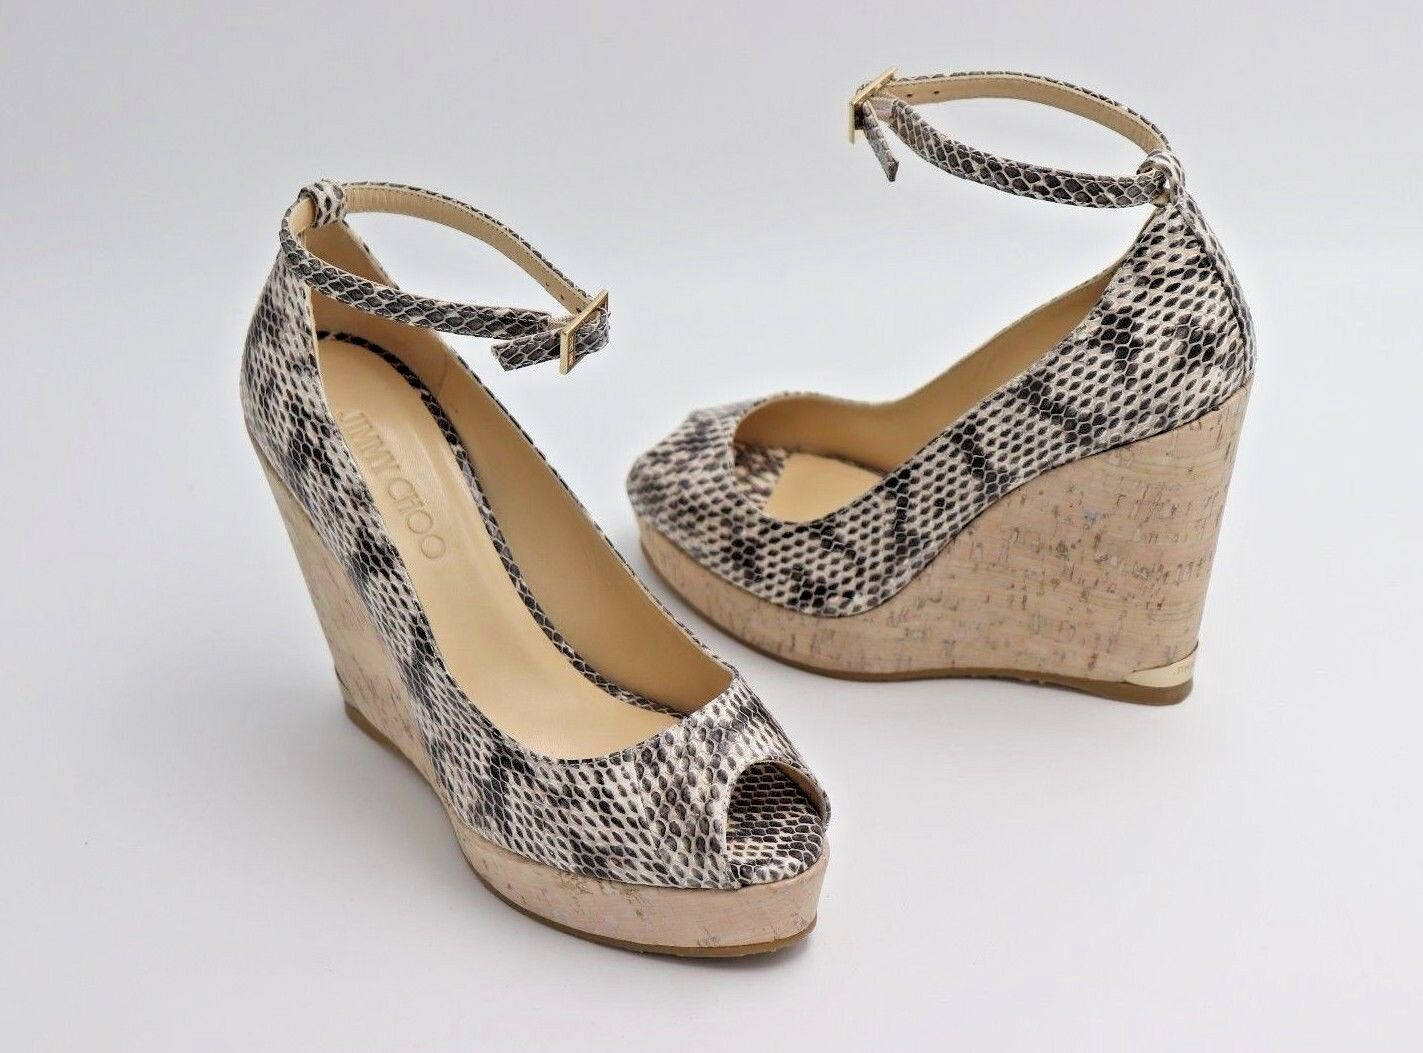 Primary image for Jimmy Choo Pacific Snake 120mm Peep-Toe Cork Wedge Pump Sandals 38.5 8.5 ($625)